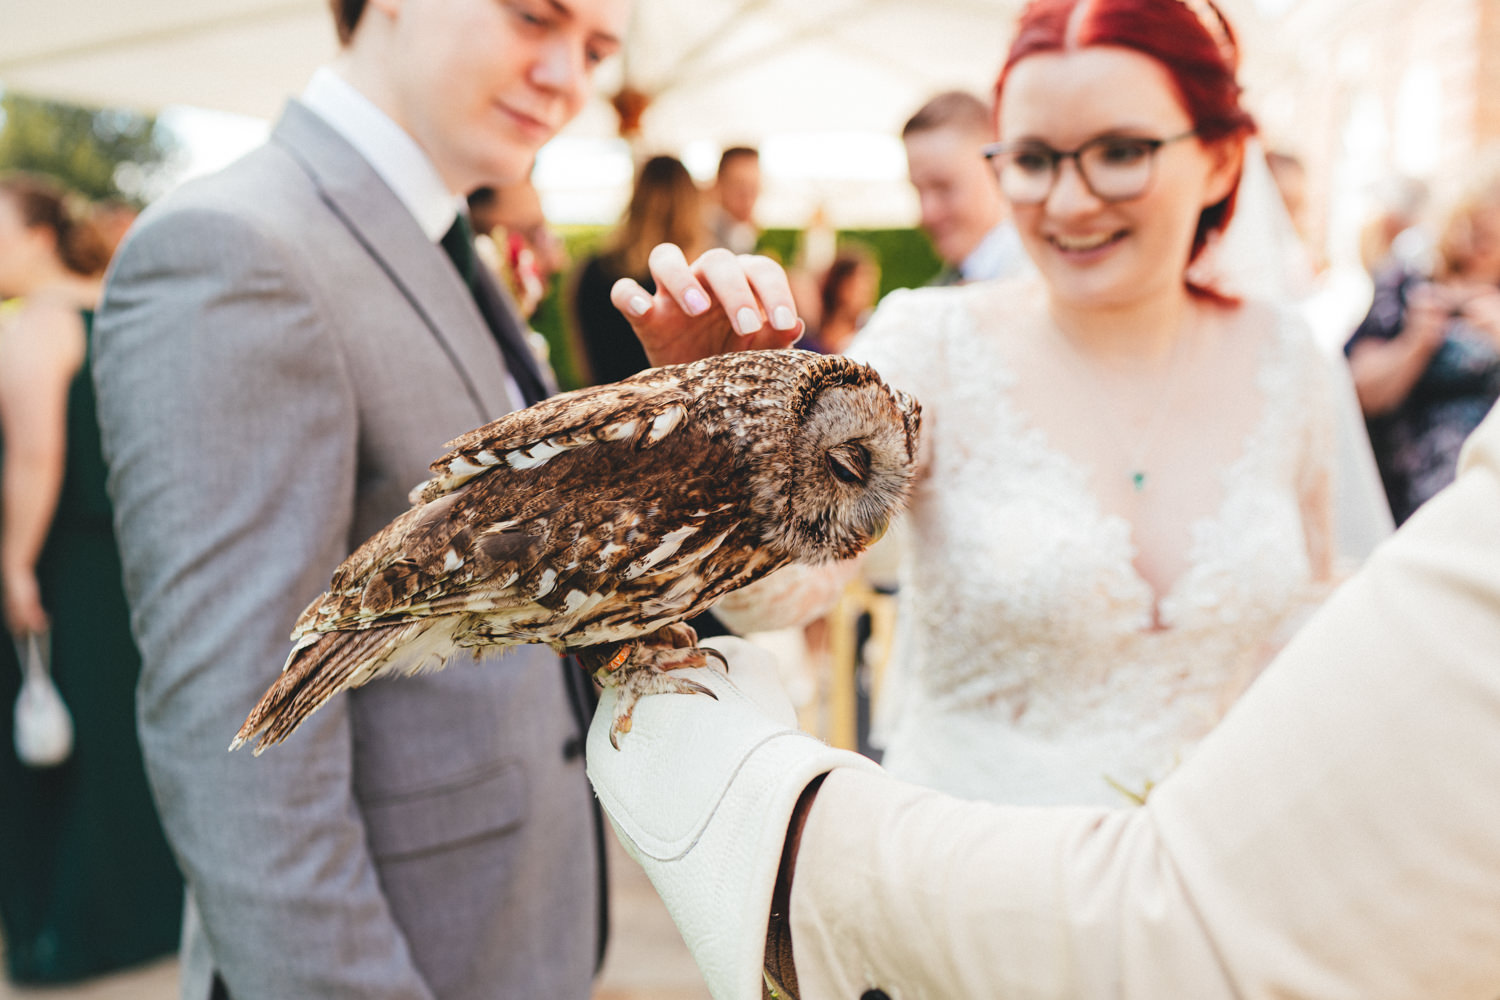 wedding owls, owls & wedding guests, bride & groom with owl